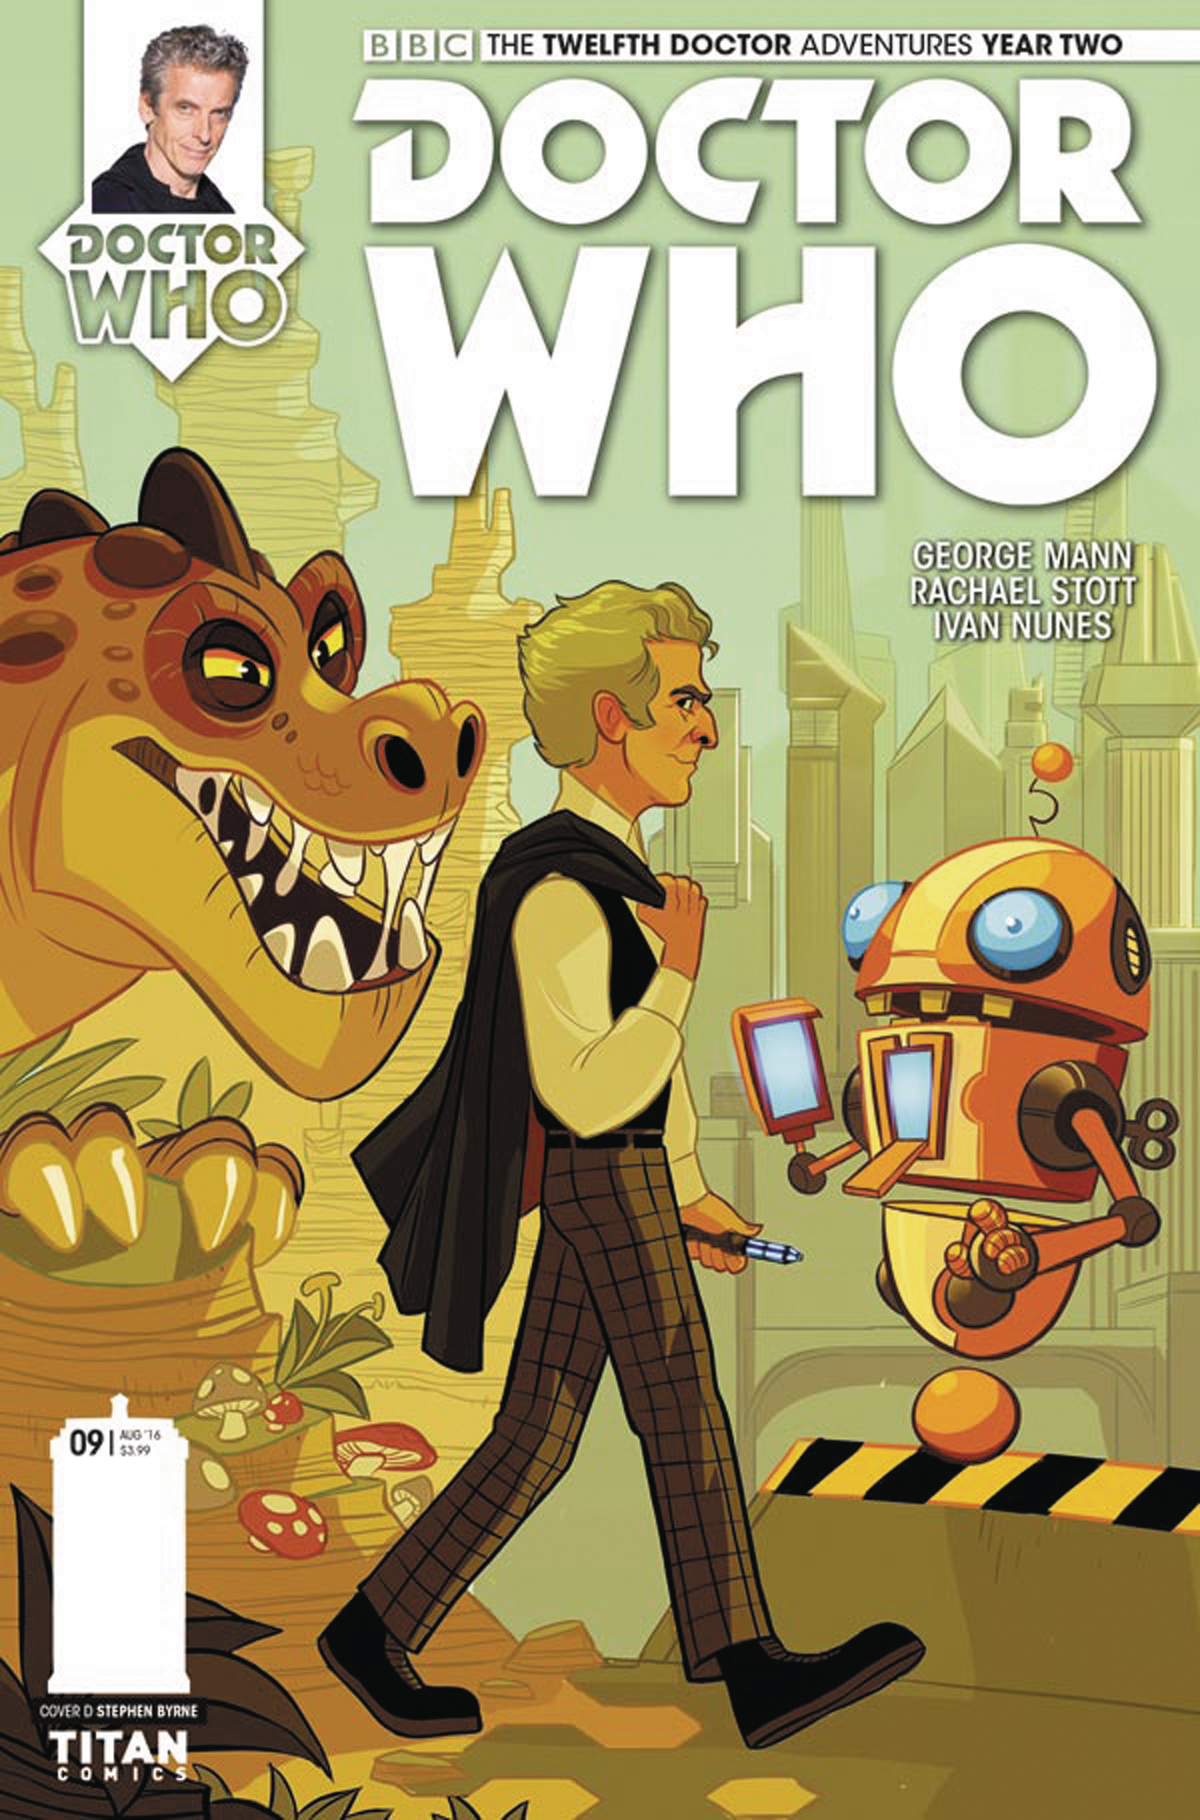 DOCTOR WHO 12TH YEAR TWO #9 CVR D BYRNE